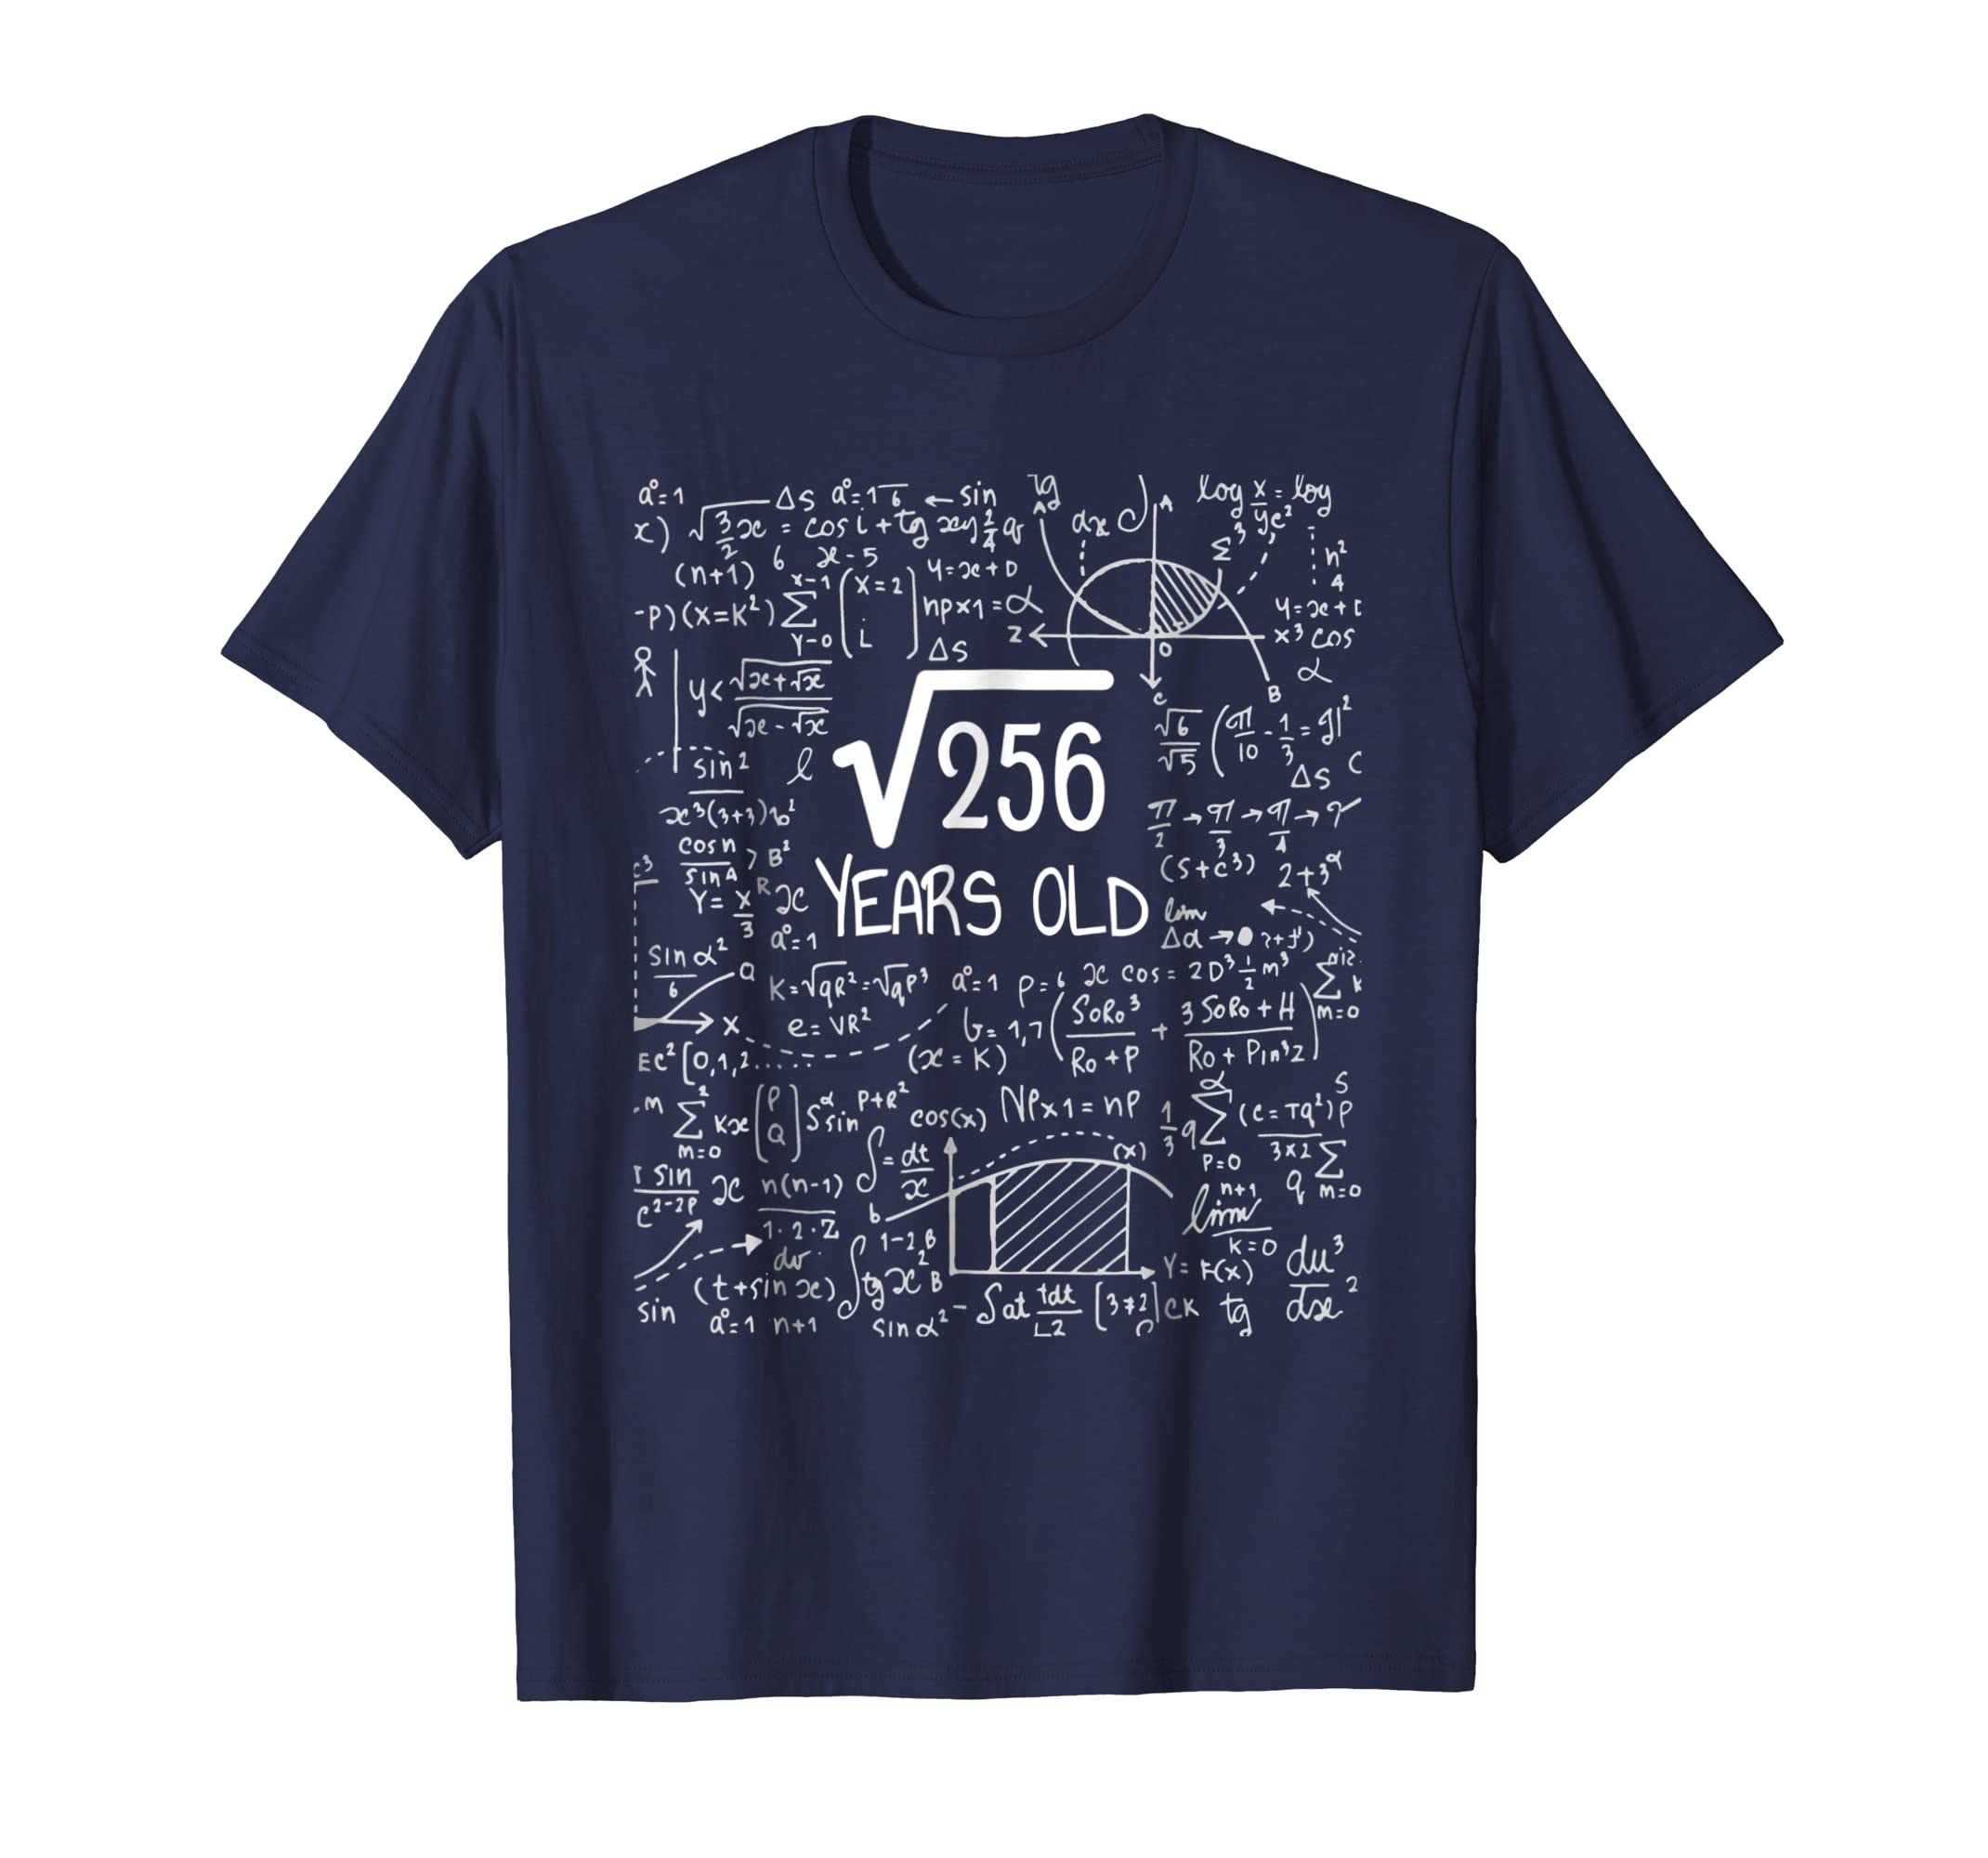 16th Birthday T Shirt   Square Root of 256: 16 Years Old-azvn